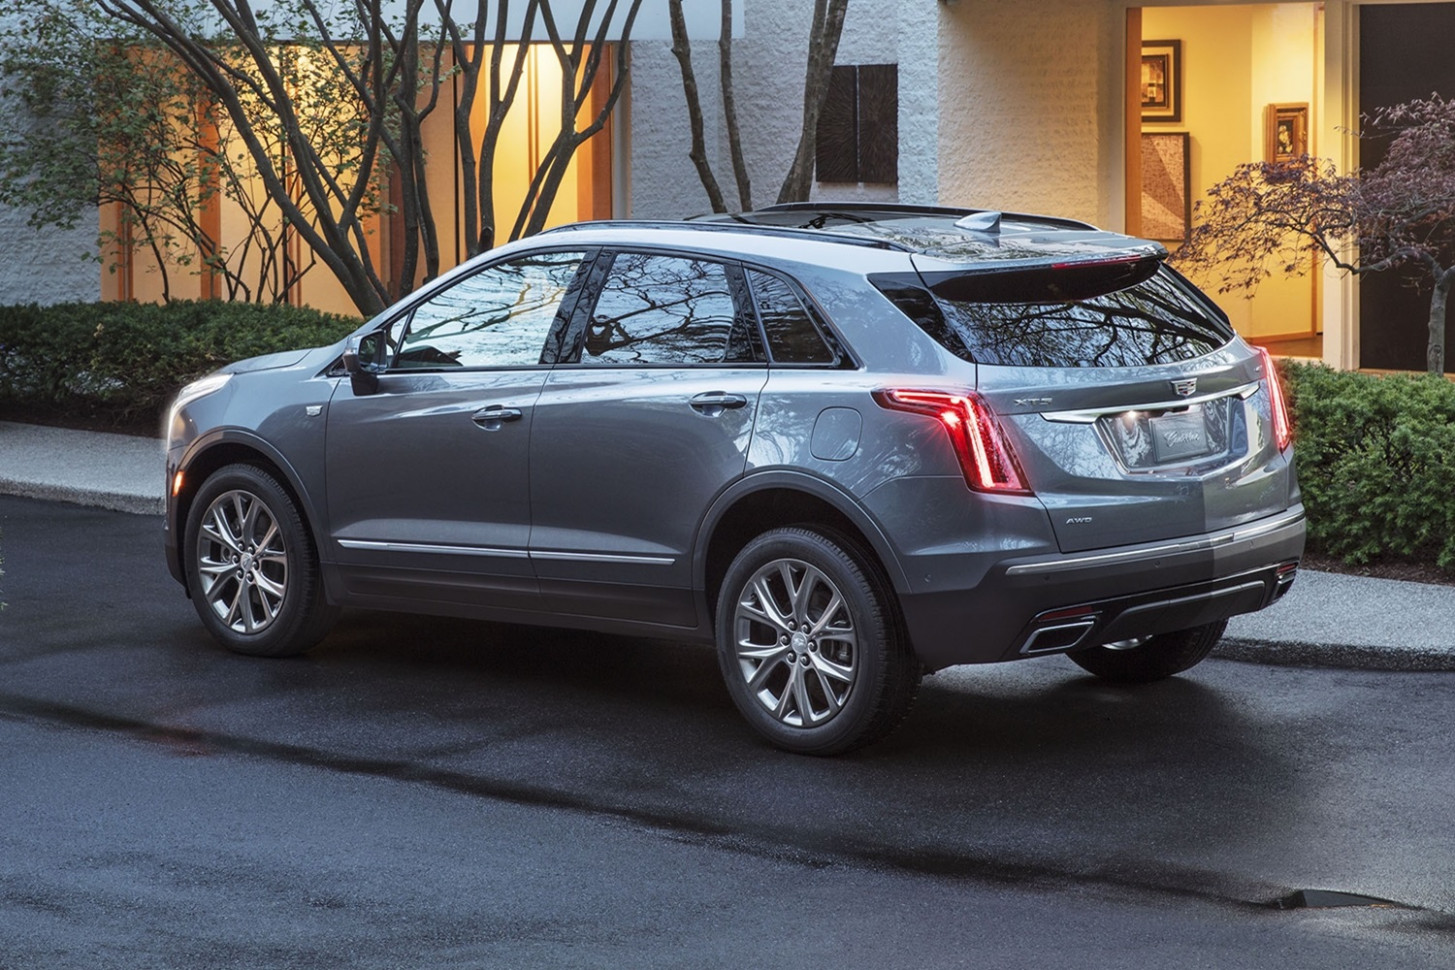 Redesign When Will The 2022 Cadillac Xt5 Be Available